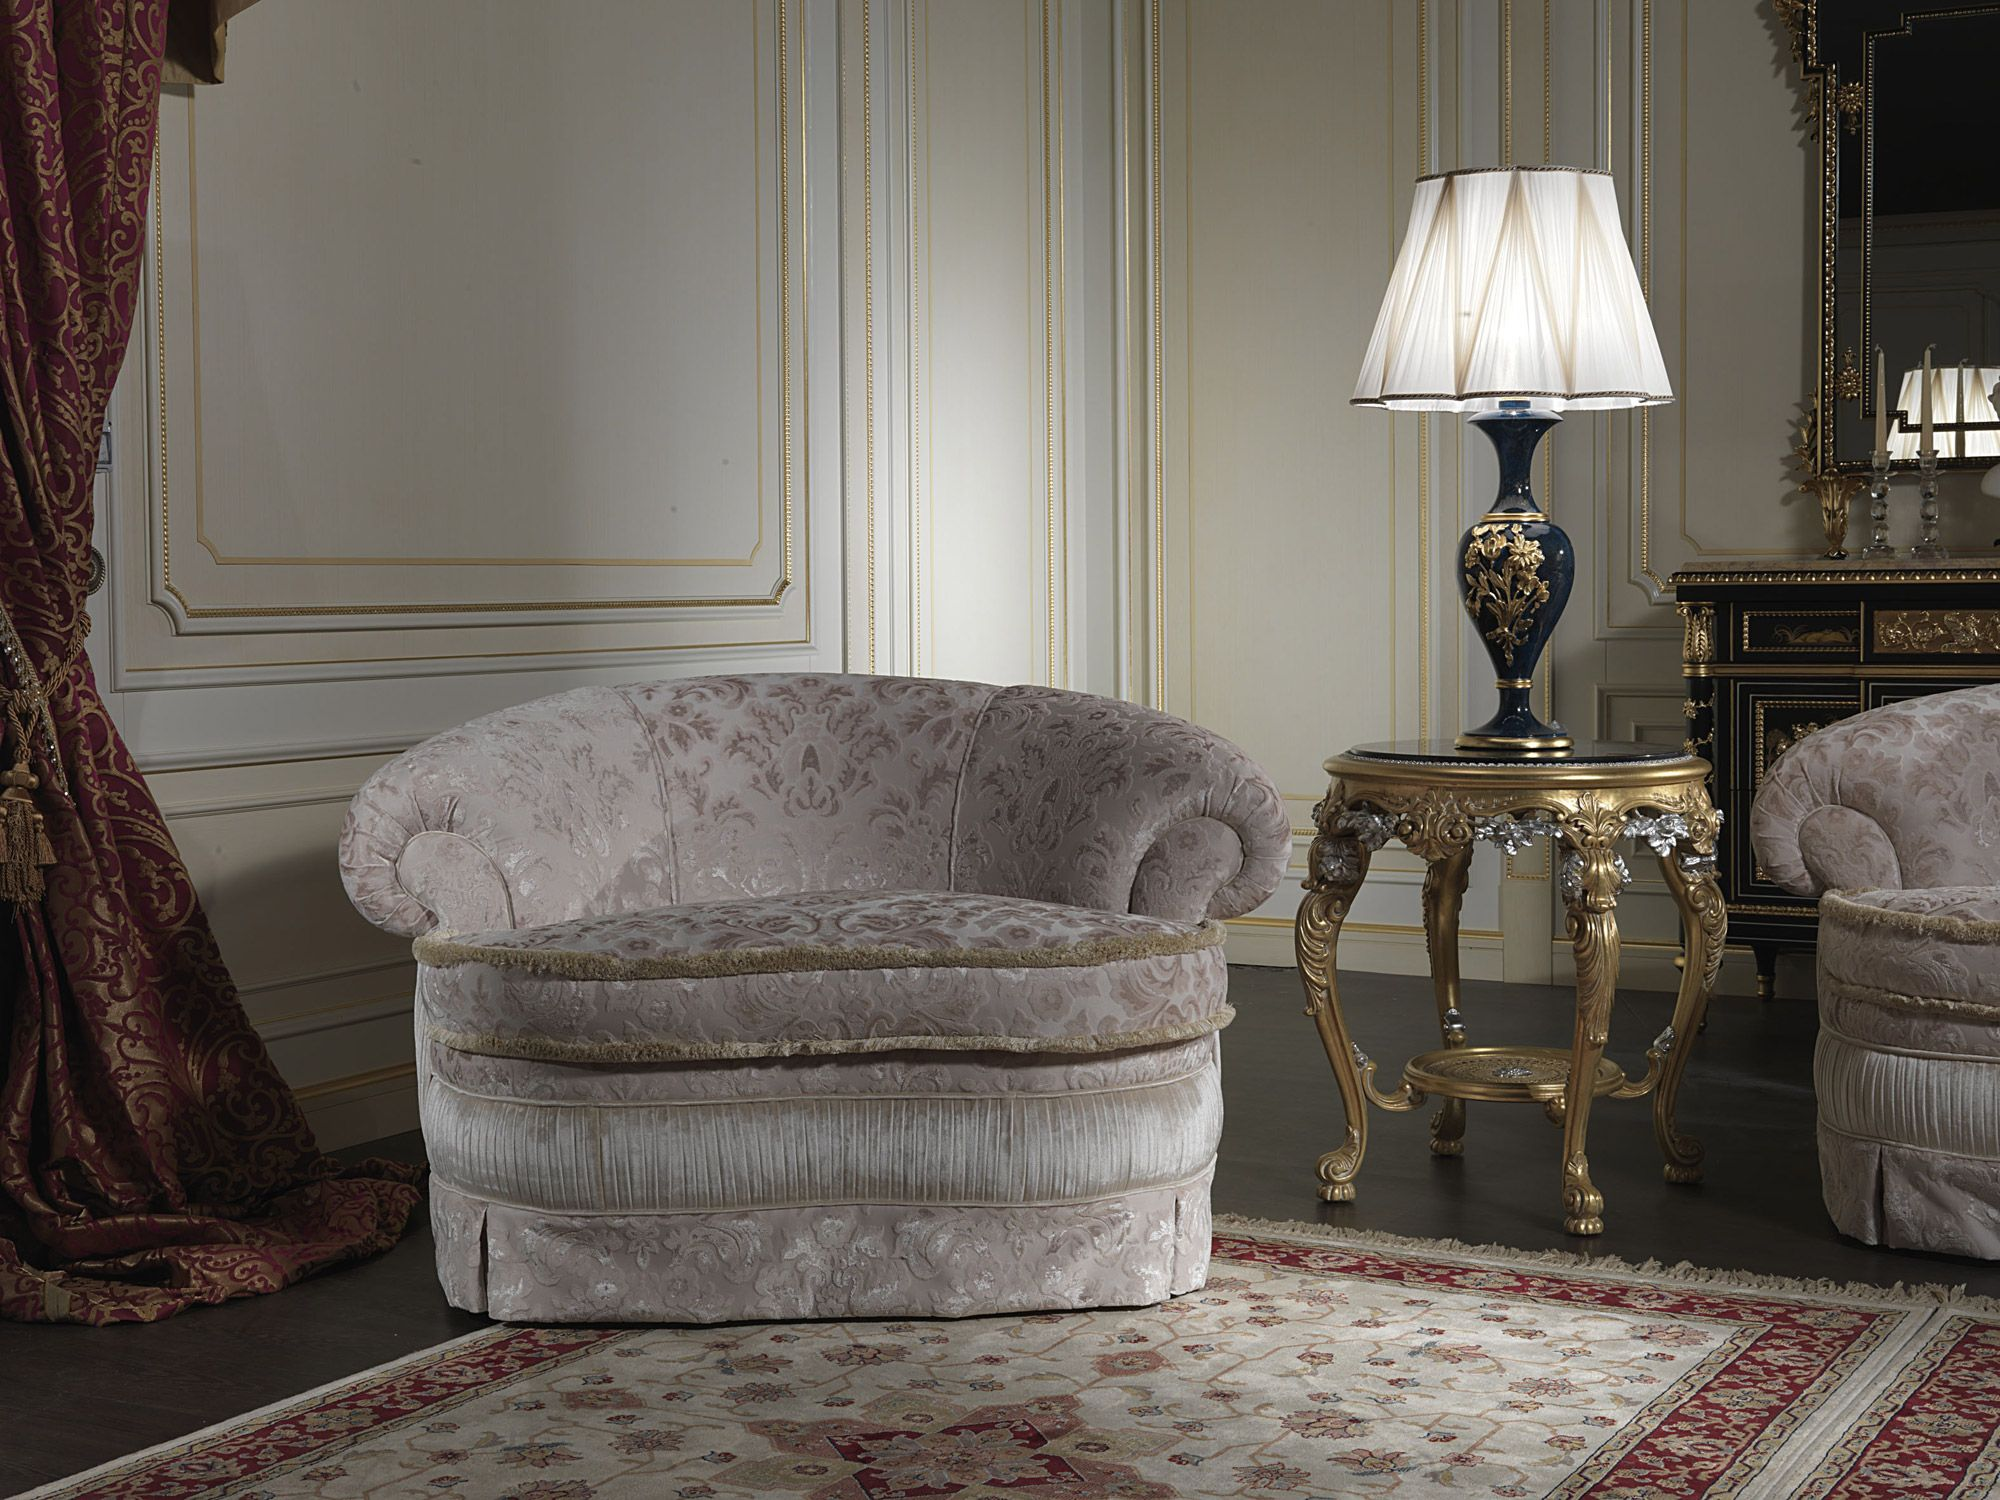 Classic Design Furniture London the armchair in the classic style of the living room london